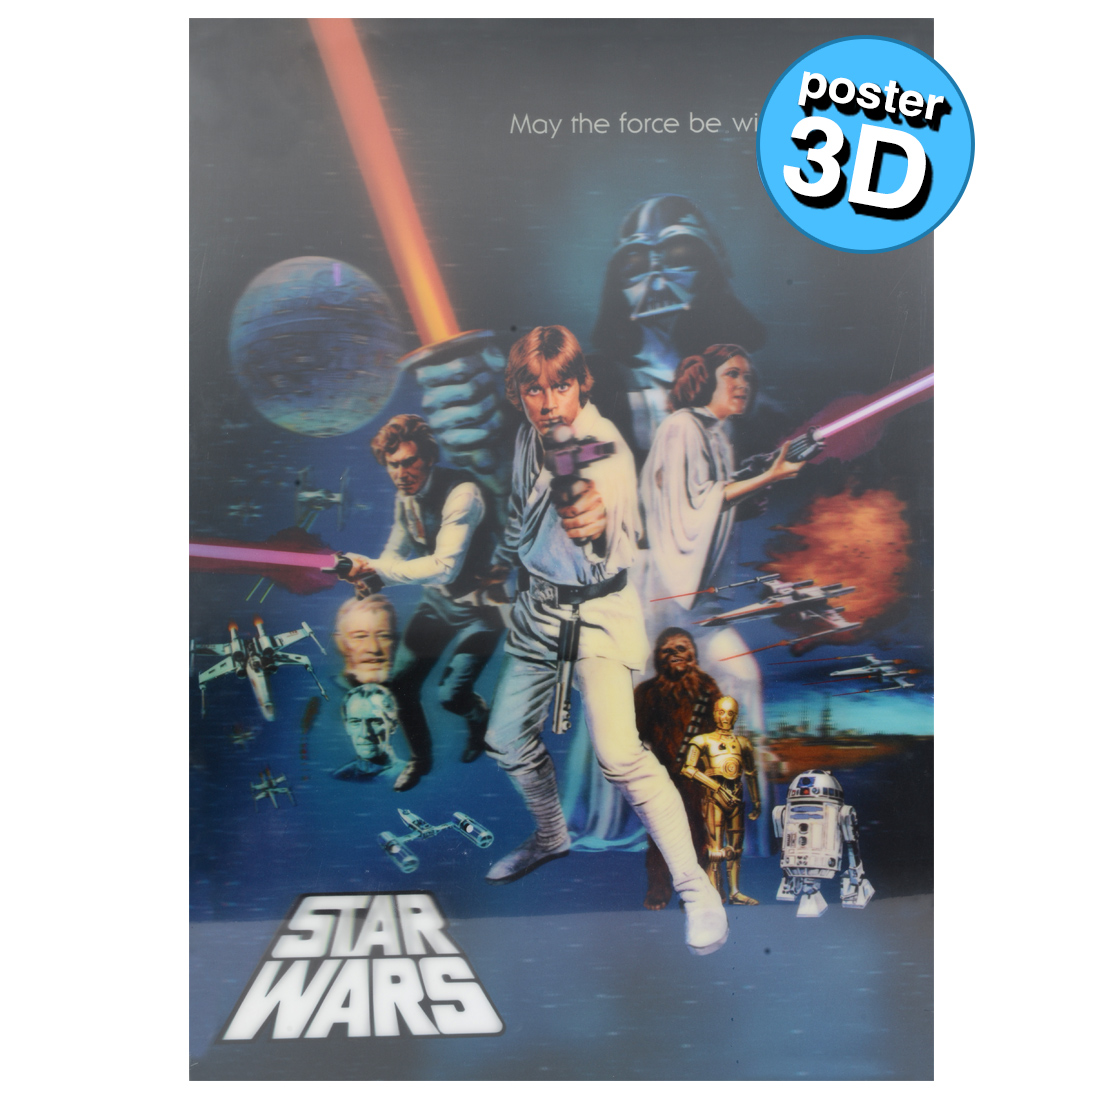 POSTER 3D STAR WARS